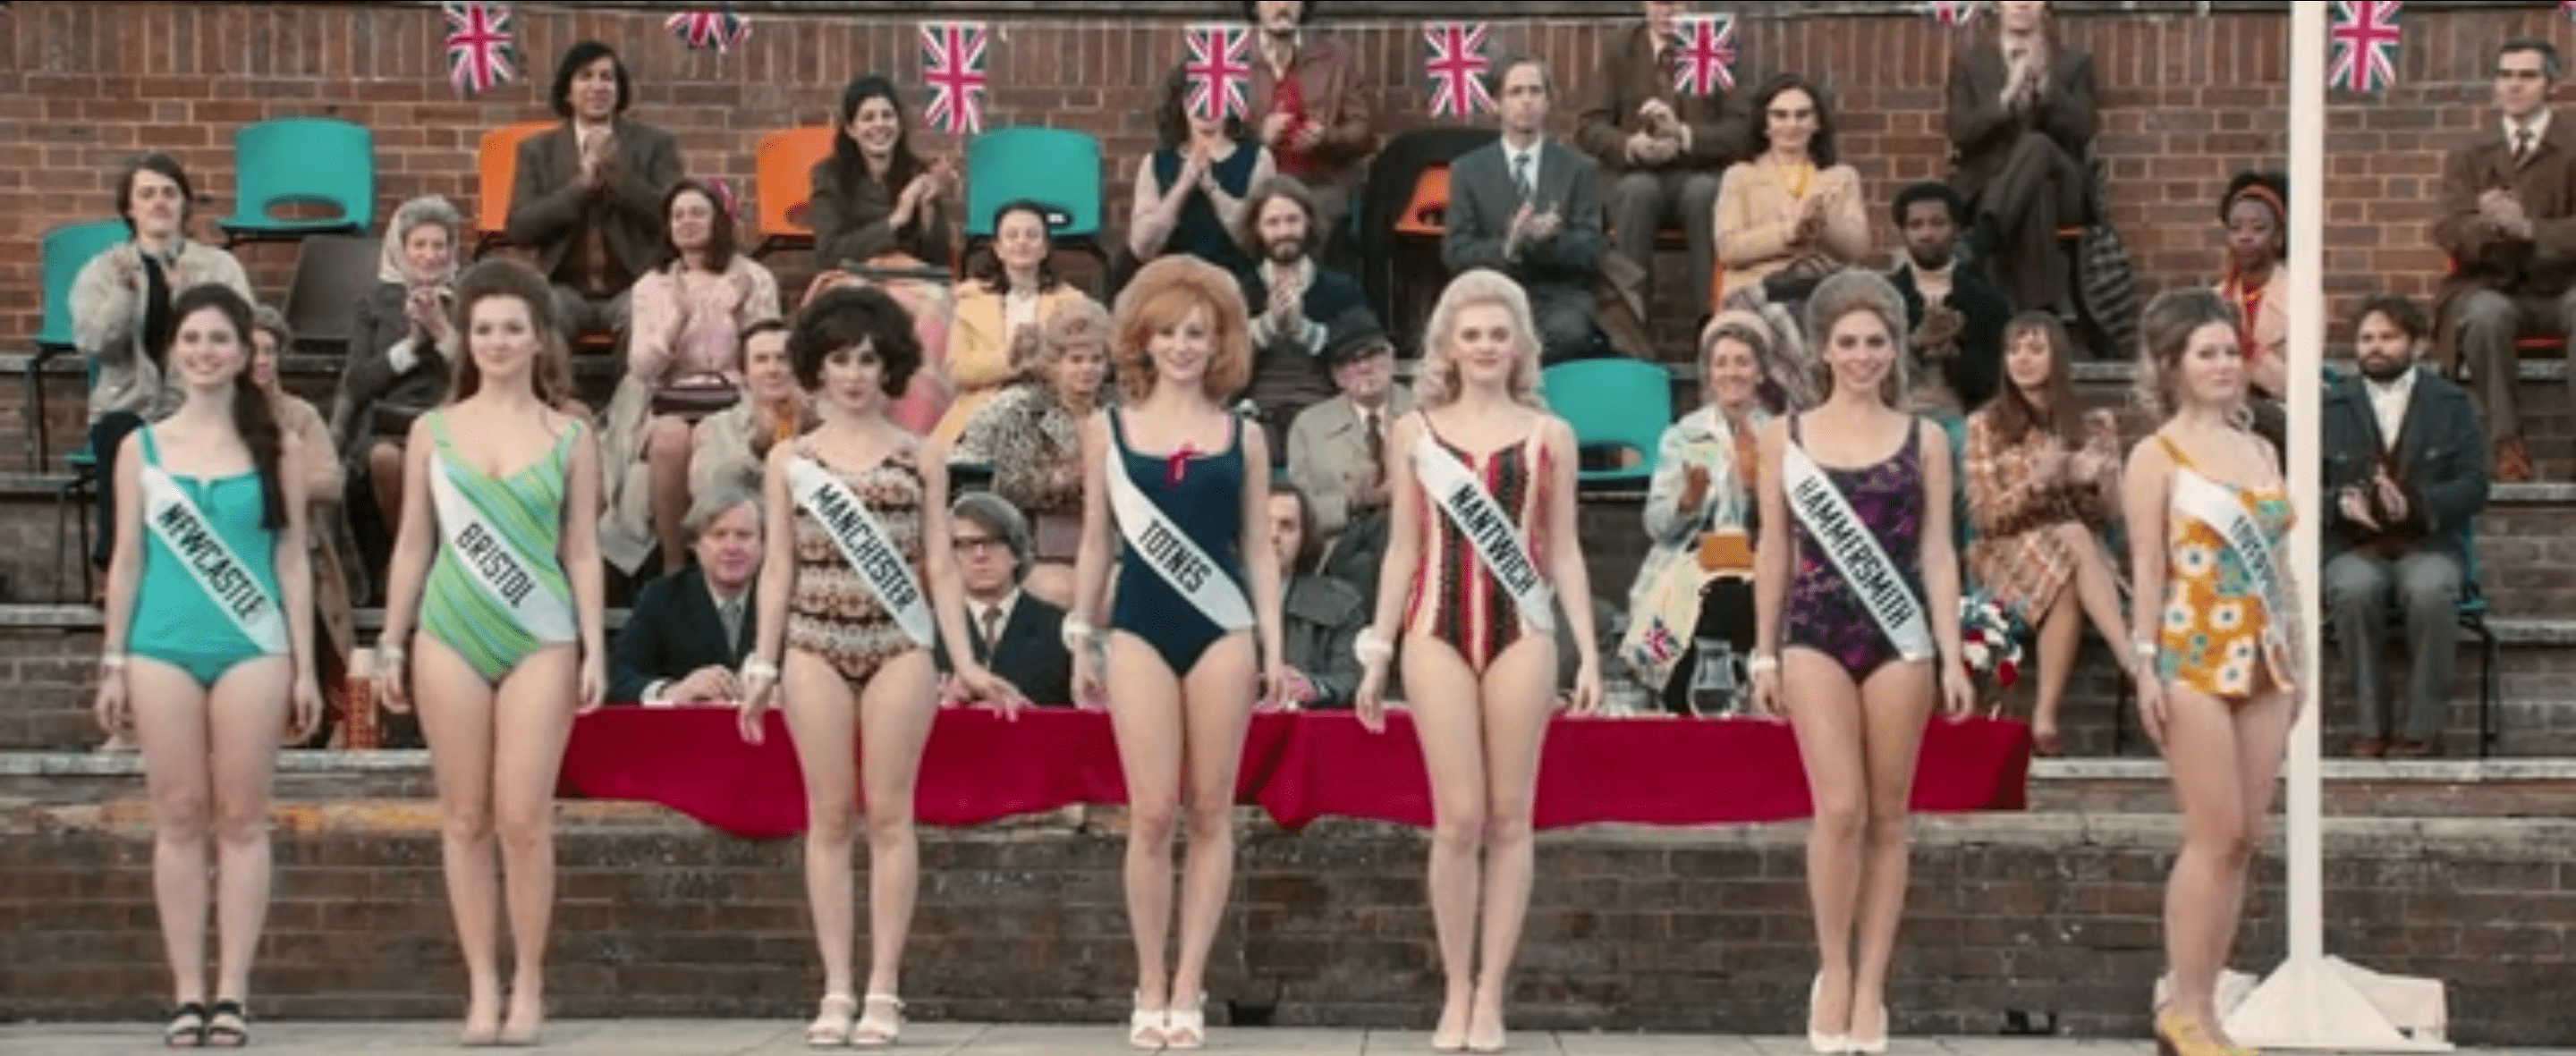 Pageant contestants wearing bathing suits lined up to be judged in front of a panel of men. Based on the way everyone else is dressed, it appears to be chilly outside.